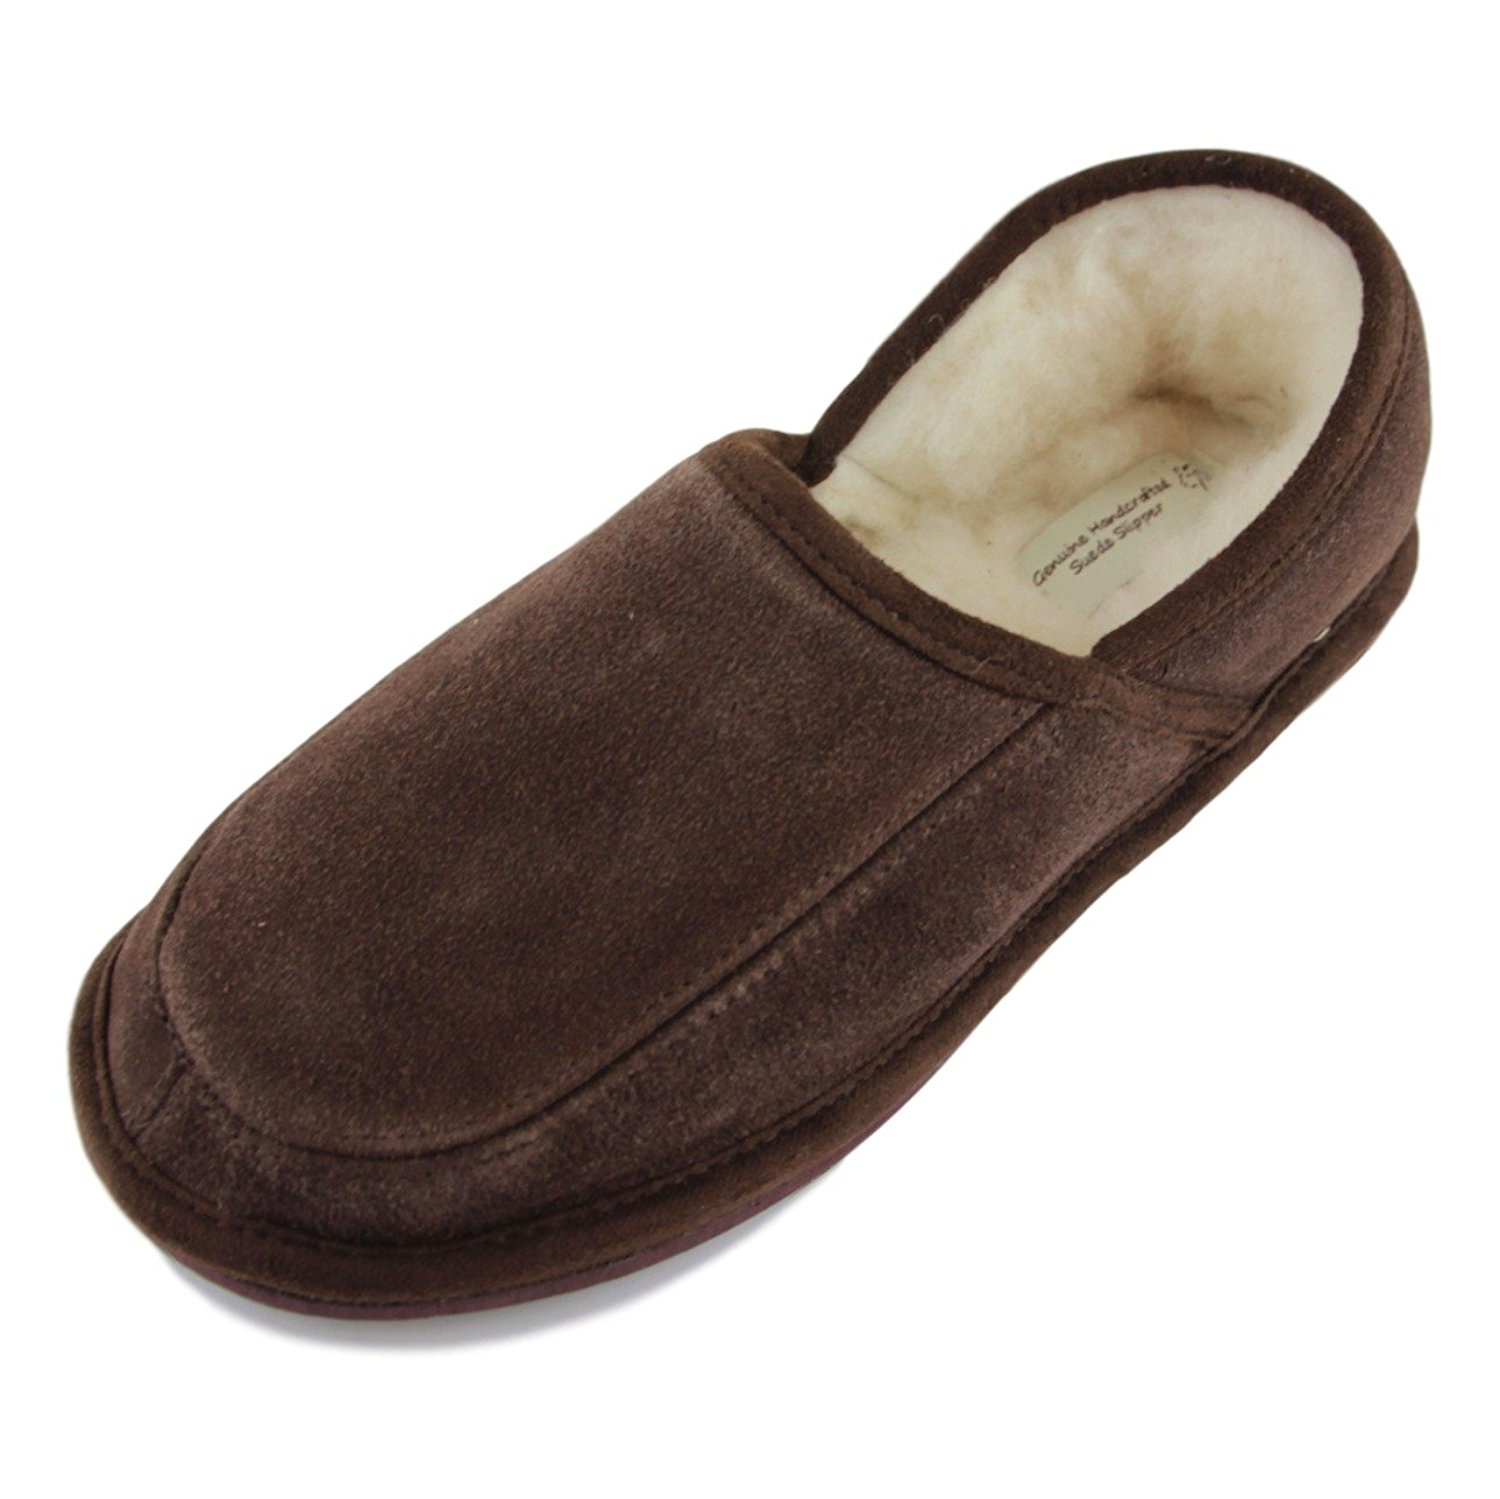 c4b4b7f84cb Get Quotations · Sheepskin World Deluxe Mens Lambswool Slippers With Hard  Sole - Suede Upper